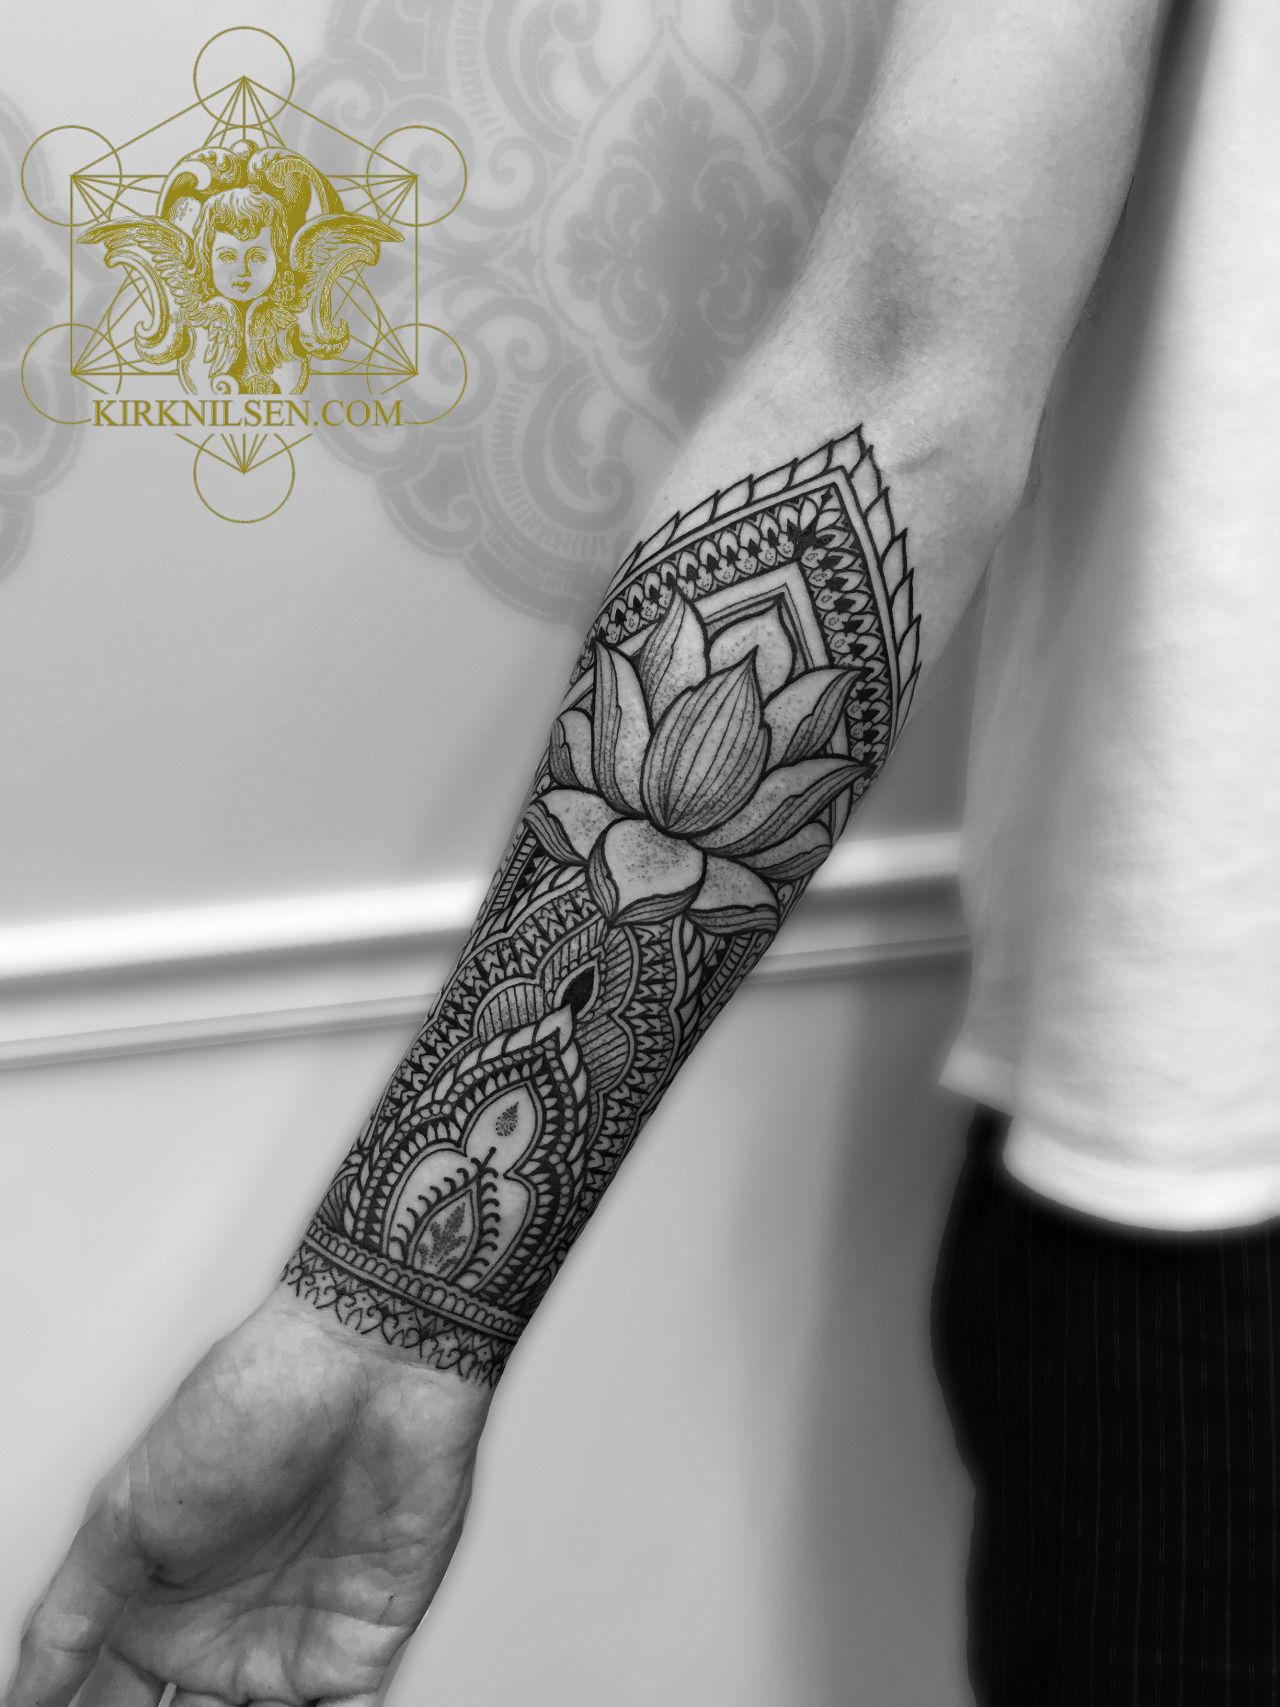 Kirk Edward Nilsen Ii Geometric Mandala Tattoo Photo Forearm Tattoos Inner Forearm Tattoo Henna Style Tattoos